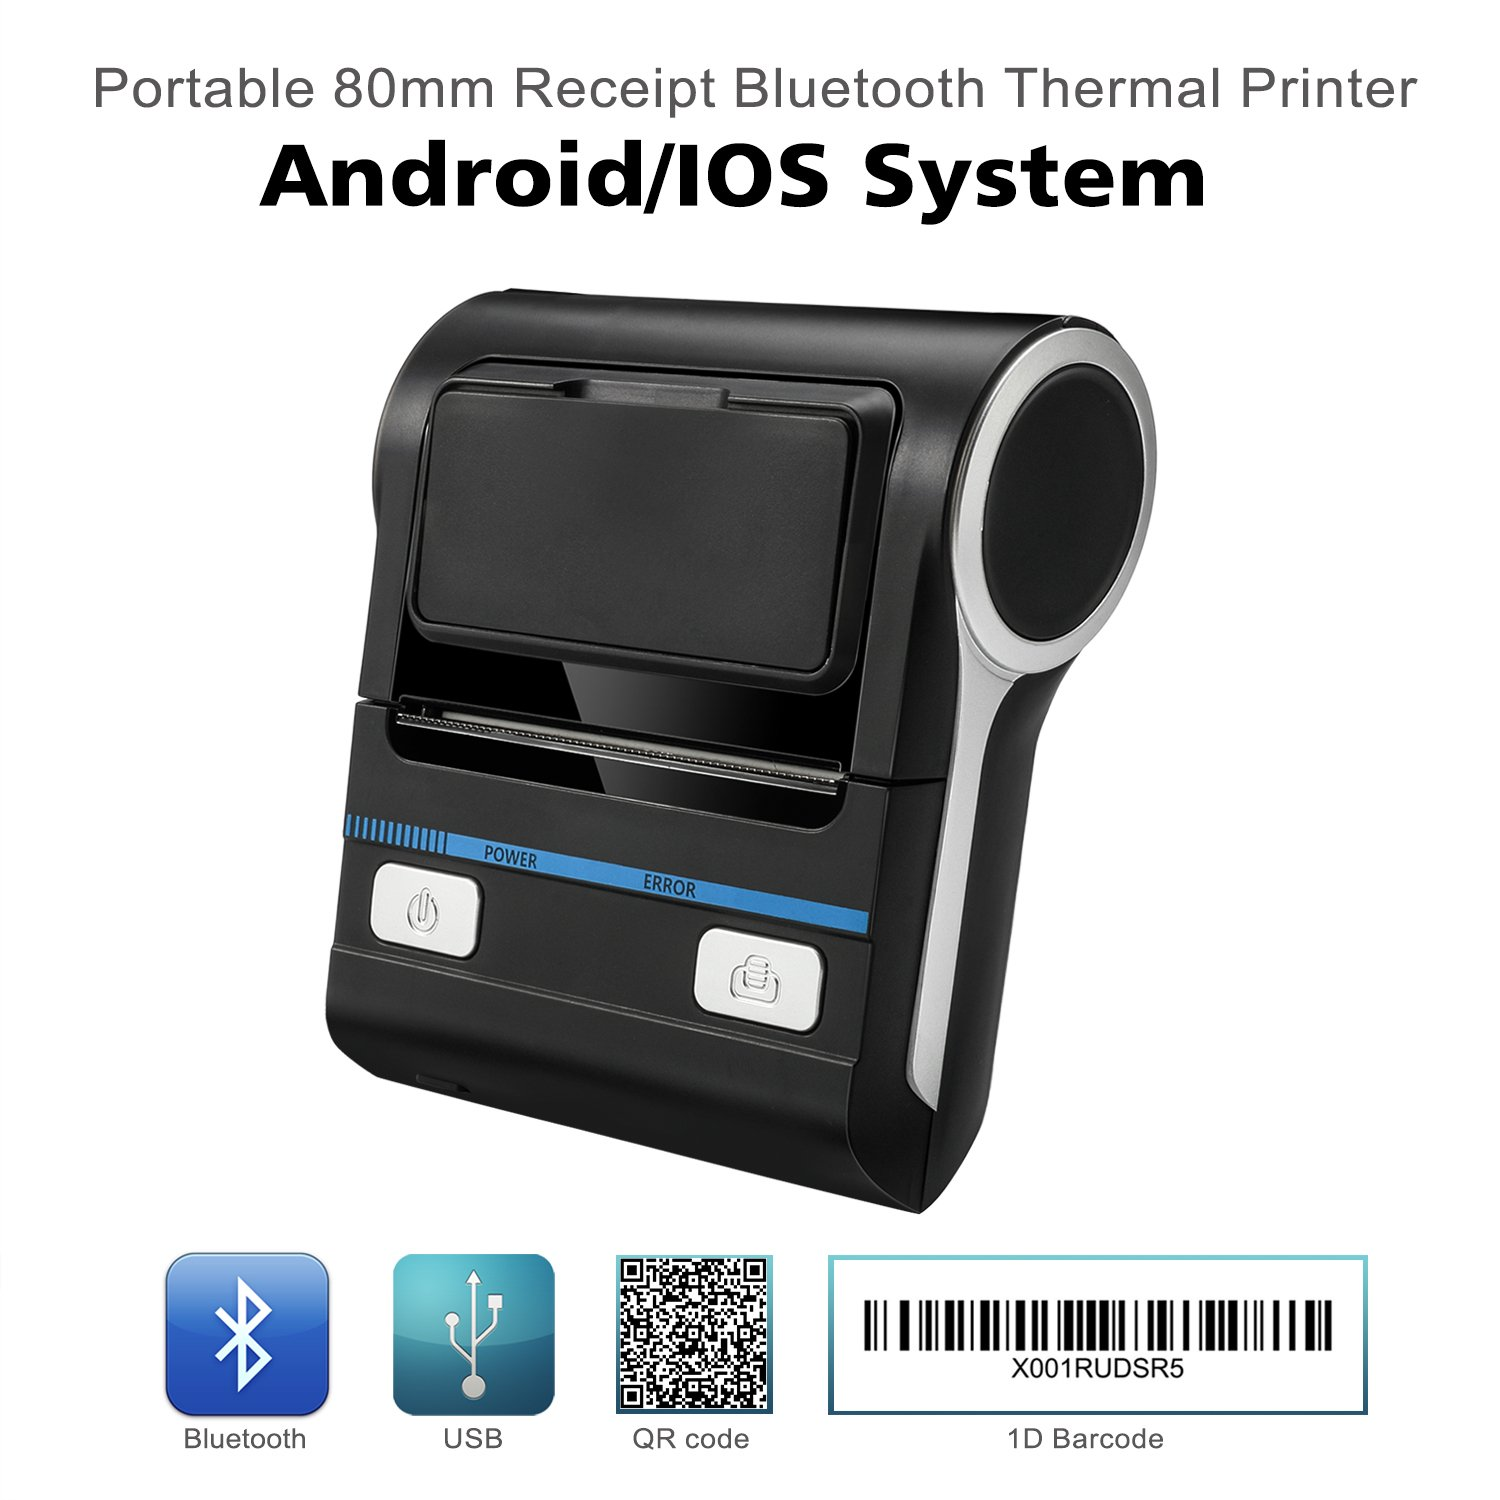 Thermal Receipt POS Small Printer 80mm Bluetooth Printer Compatible with Android/iOS/Windows System ESC/POS Print Commands Set for Office and Small Business